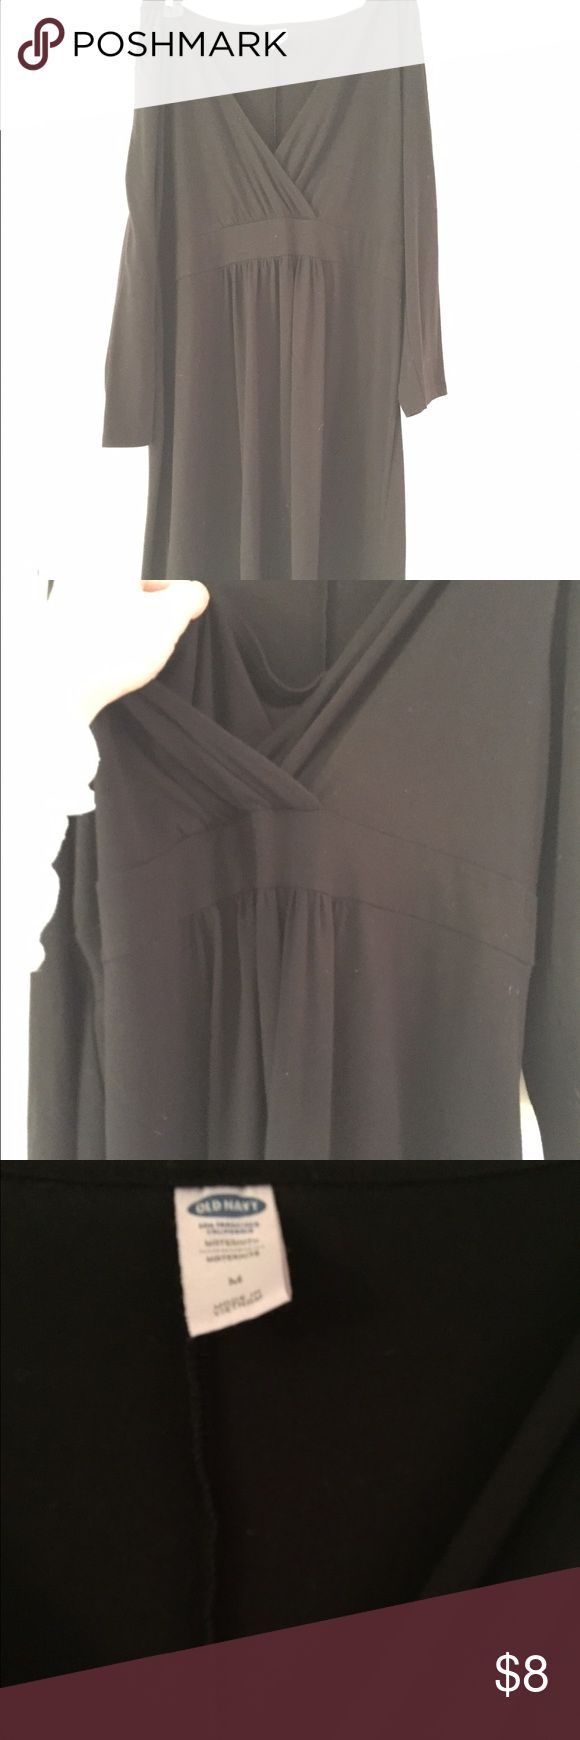 Black old navy maternity nursing dress Great essential piece for pregnancy and maternity these nursing top styles make it so much easier to breastfeed in public. Dress color looks good in person the pictures make color look a little dingy by the dress does not it's the camera. Excellent used condition. Old Navy Dresses Midi